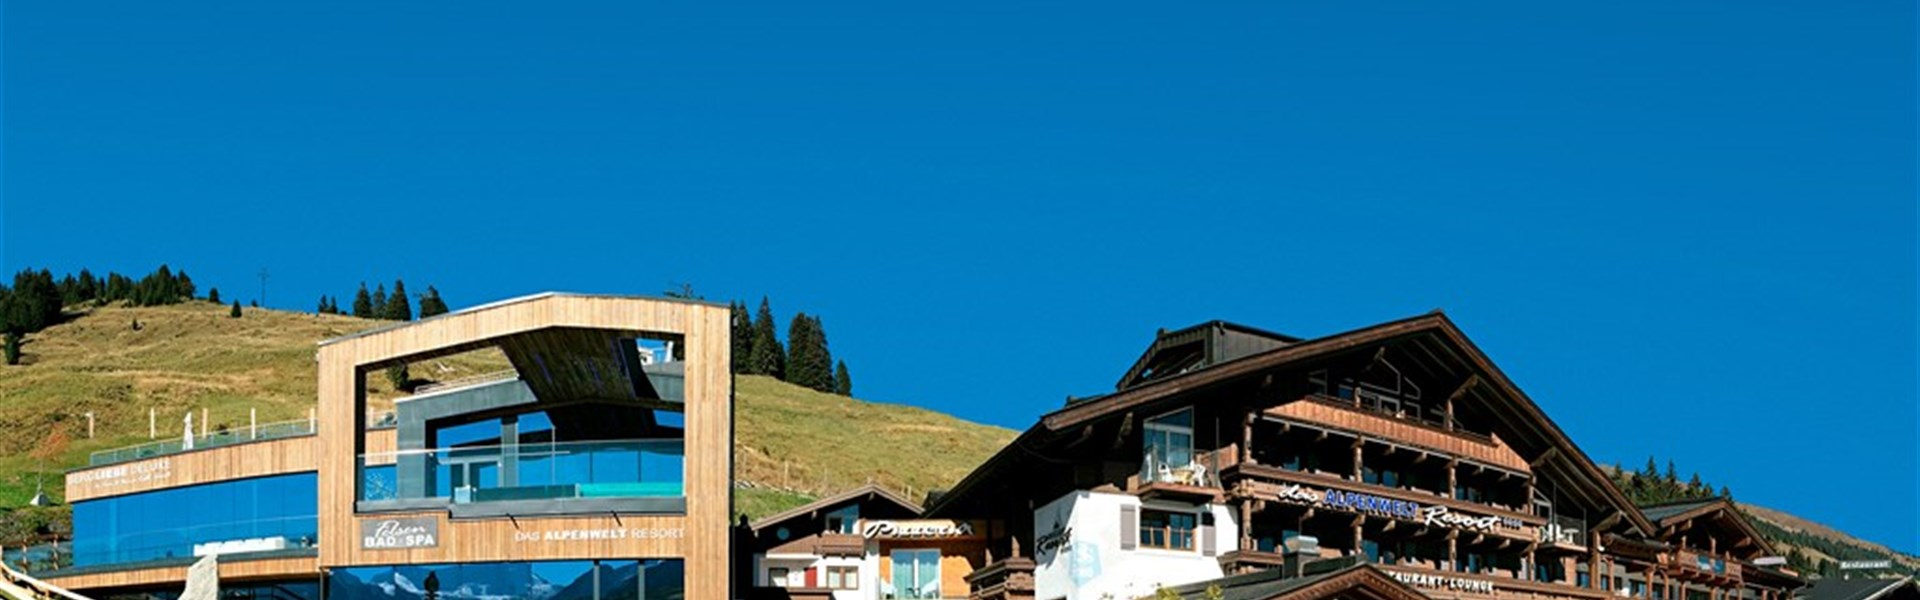 Das Alpenwelt Resort Lifestyle Family Spa -